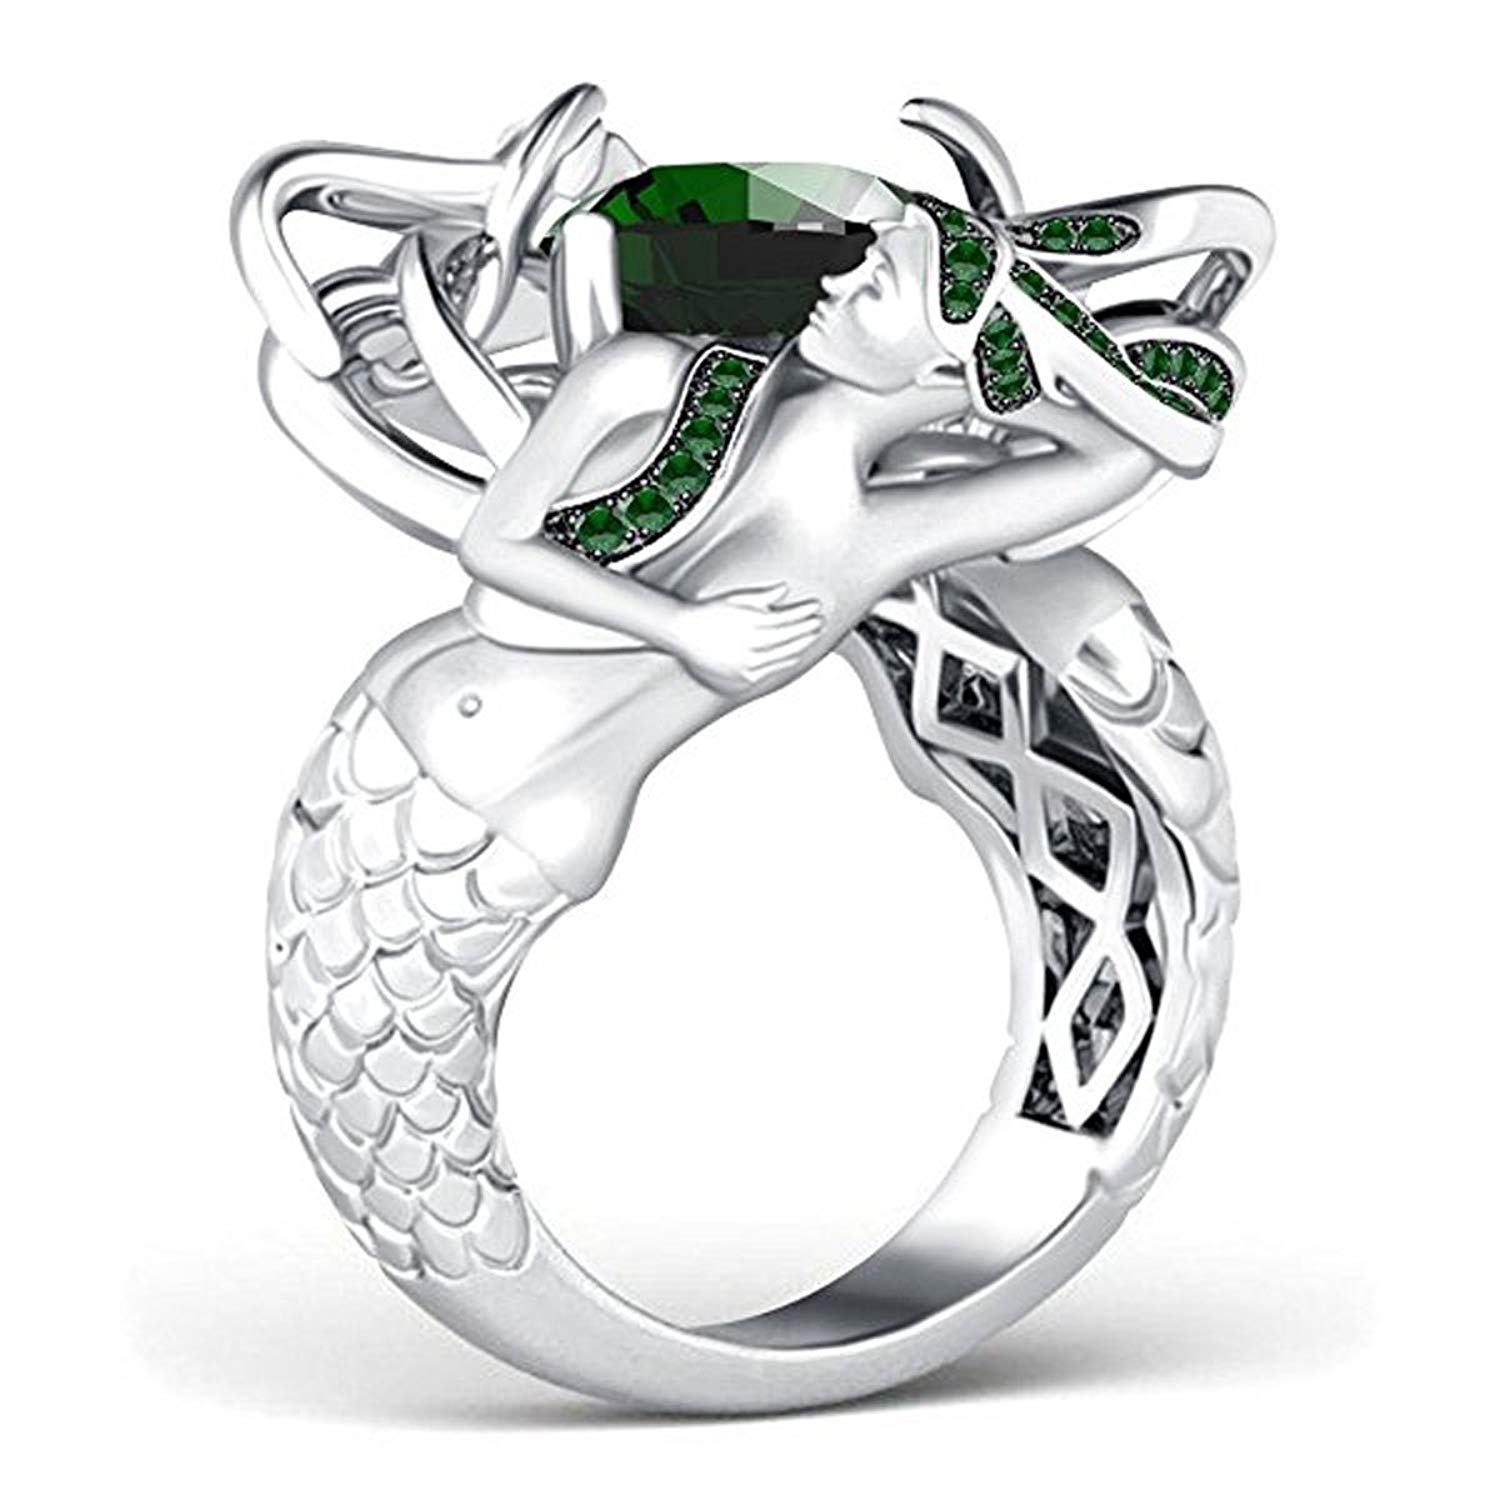 Star Retail Hot Sale!!! 4.00 CT. TW Cushion Cut Green Emerald 14k White Gold Plated Sterling Silver Base Alloy CZ Mermaid Ring For Women's Jewelry